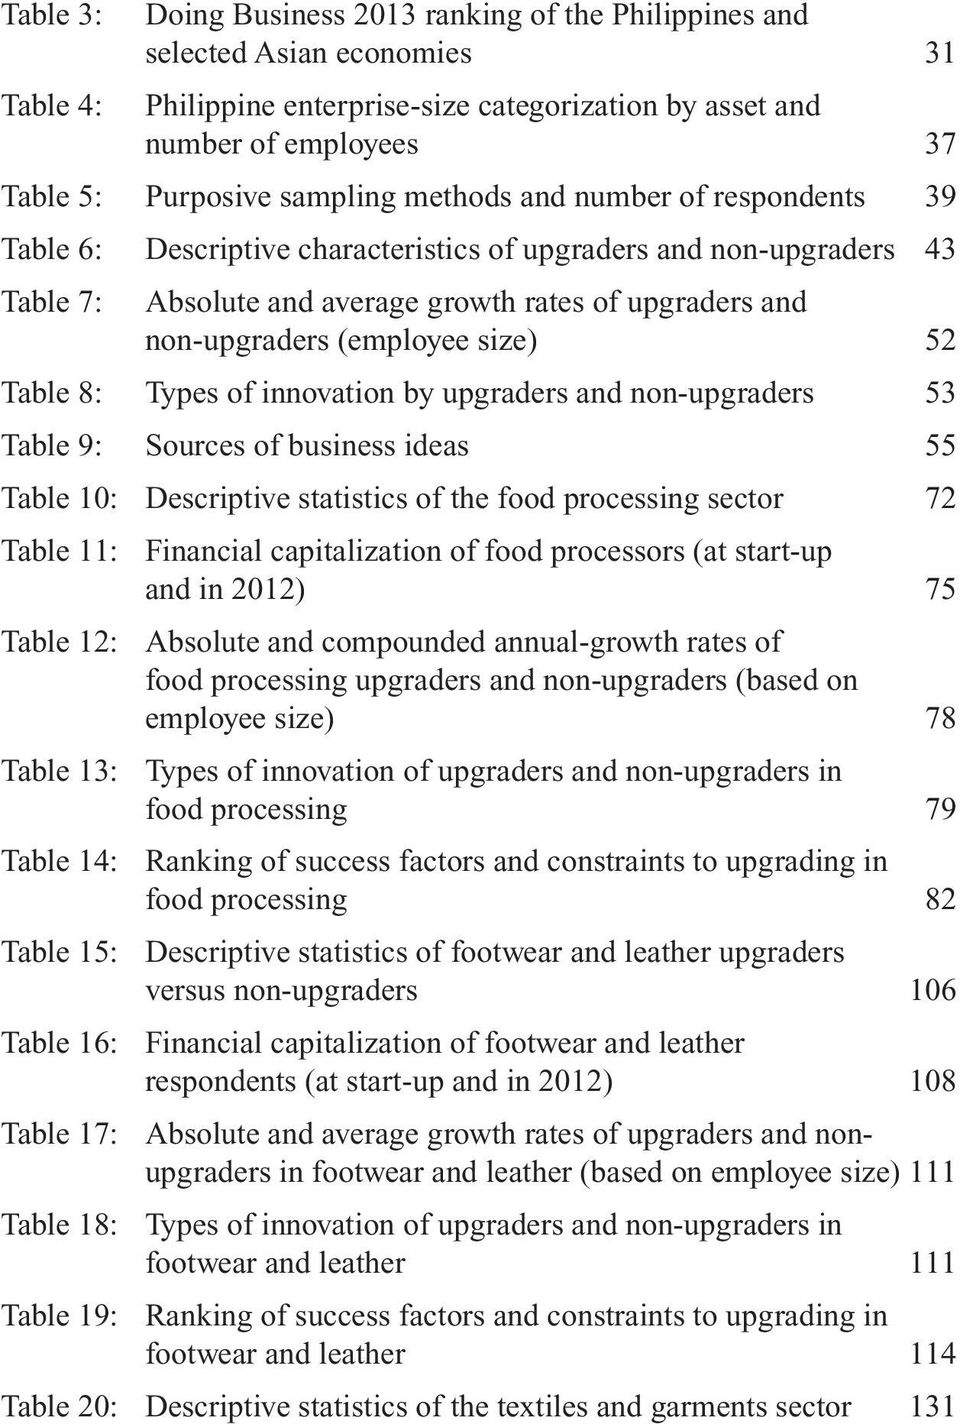 (employee size) 52 Table 8: Types of innovation by upgraders and non-upgraders 53 Table 9: Sources of business ideas 55 Table 10: Descriptive statistics of the food processing sector 72 Table 11: